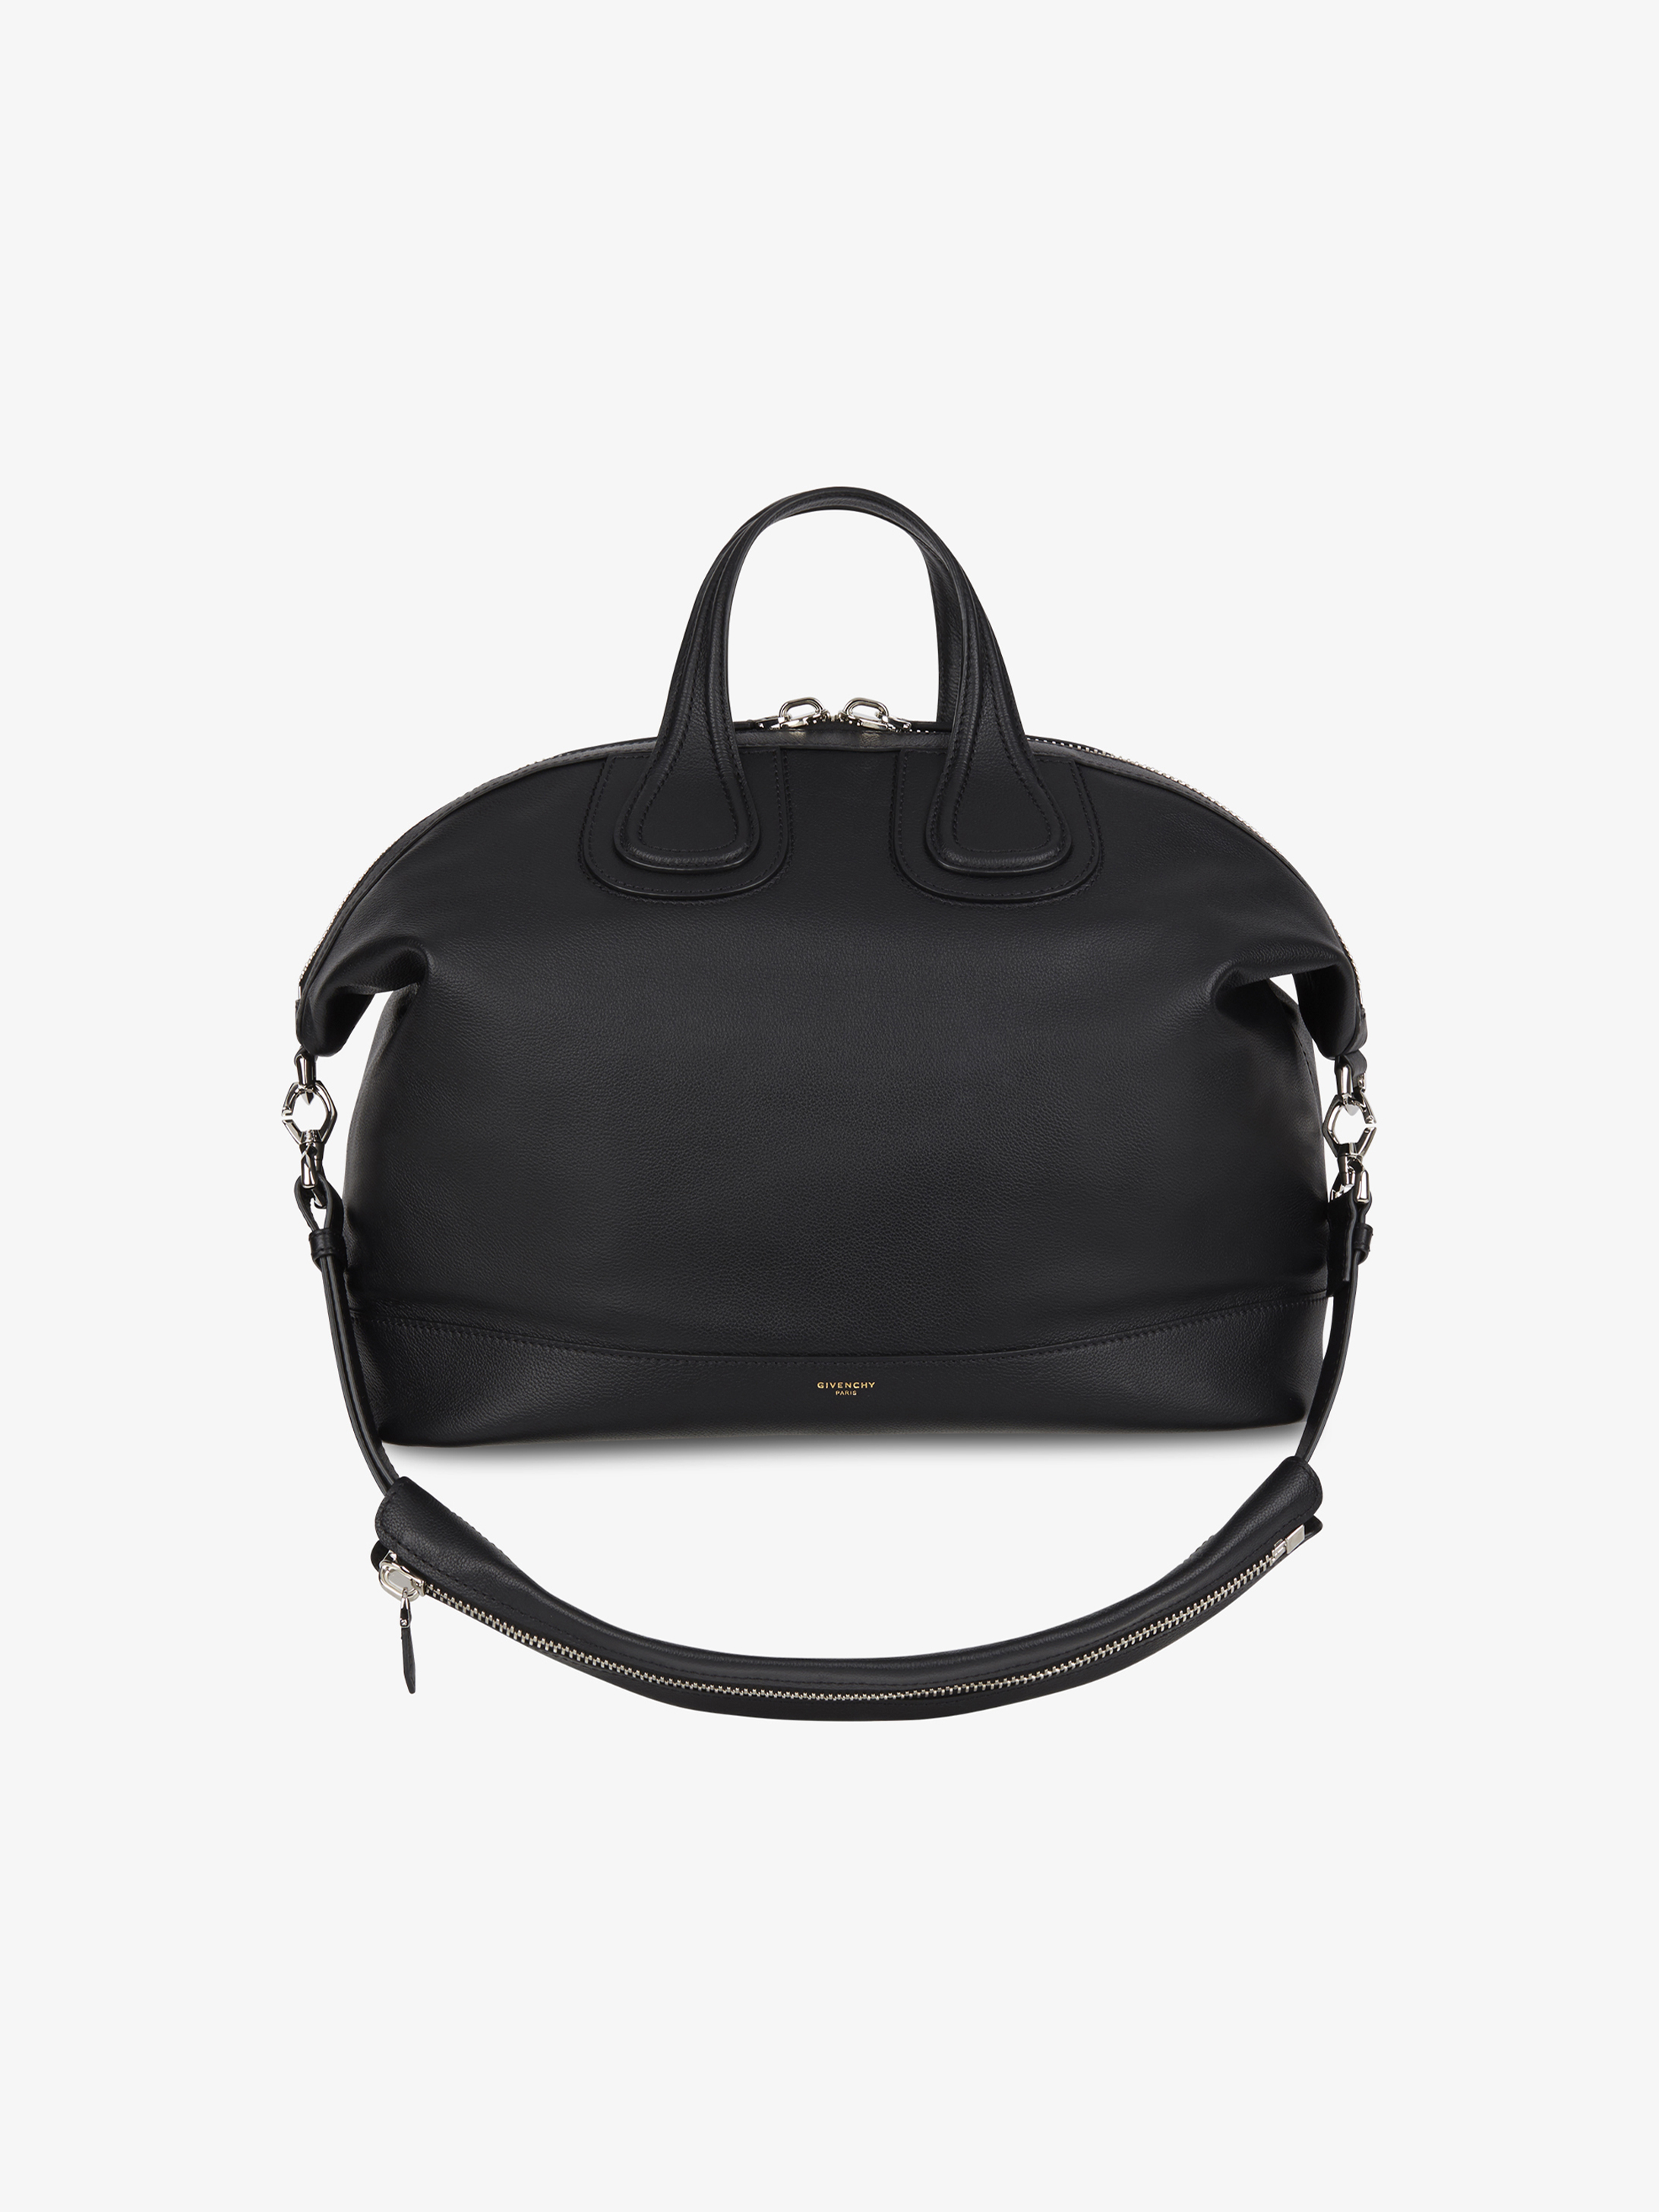 Nightingale top handle bag in smooth leather